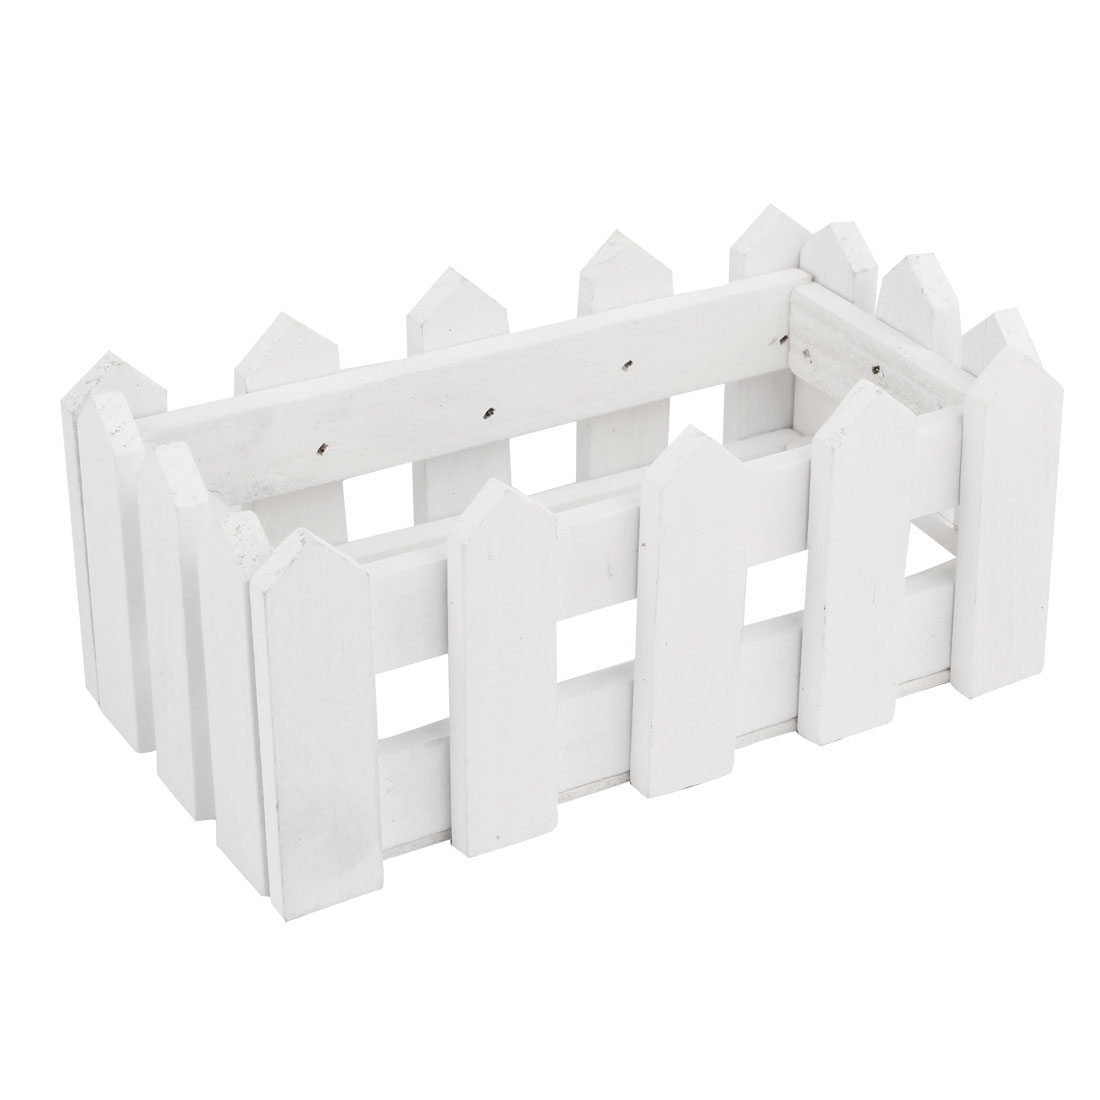 155mm Long White Rectangle Wood Fence Garden Flower Barrels Flowerpot